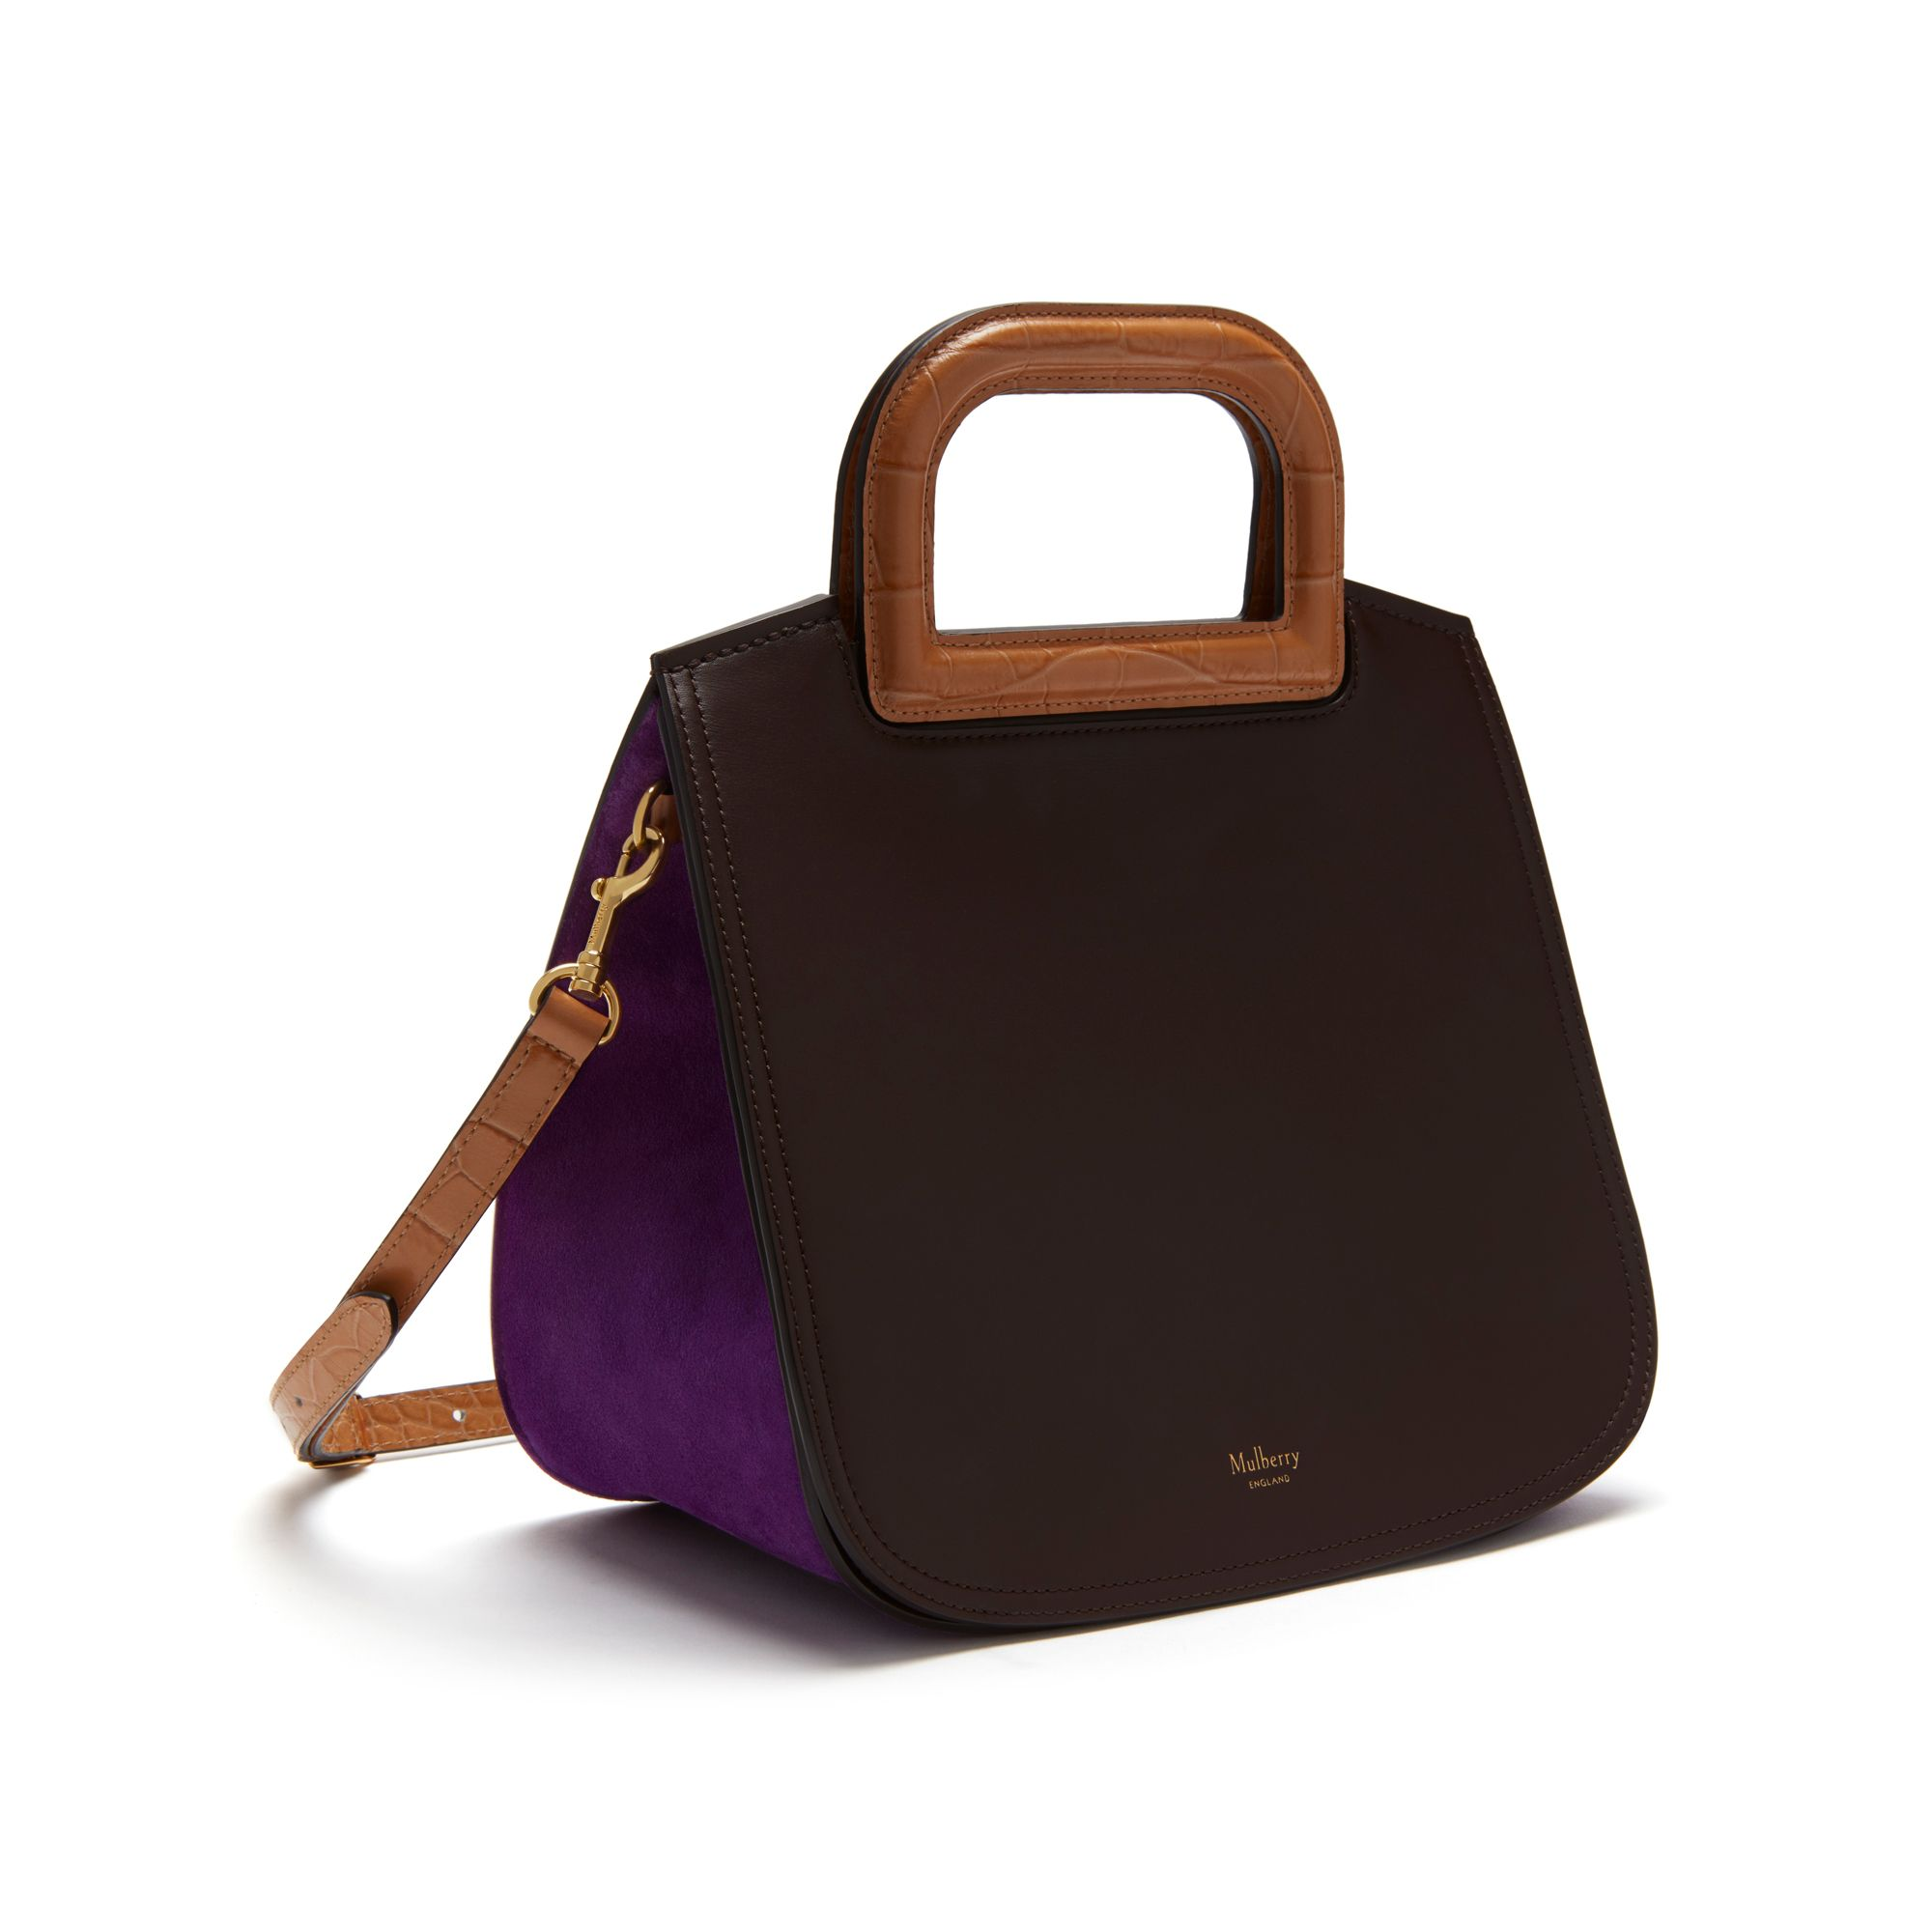 a25a4a2c0659 Mulberry sale  the best handbags in the UK sale